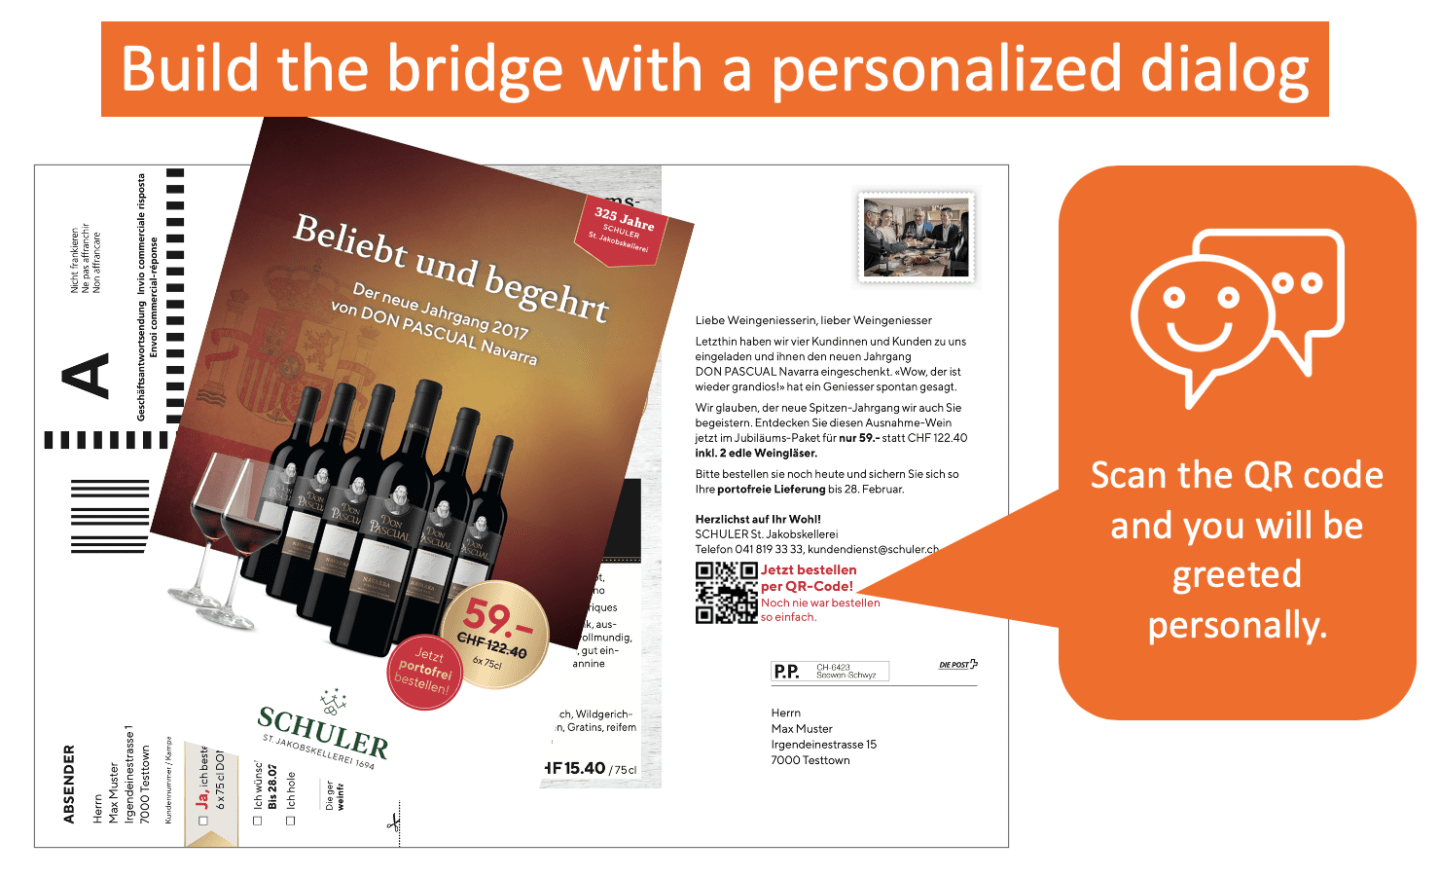 Place an order via postcard and personalized chat dialog